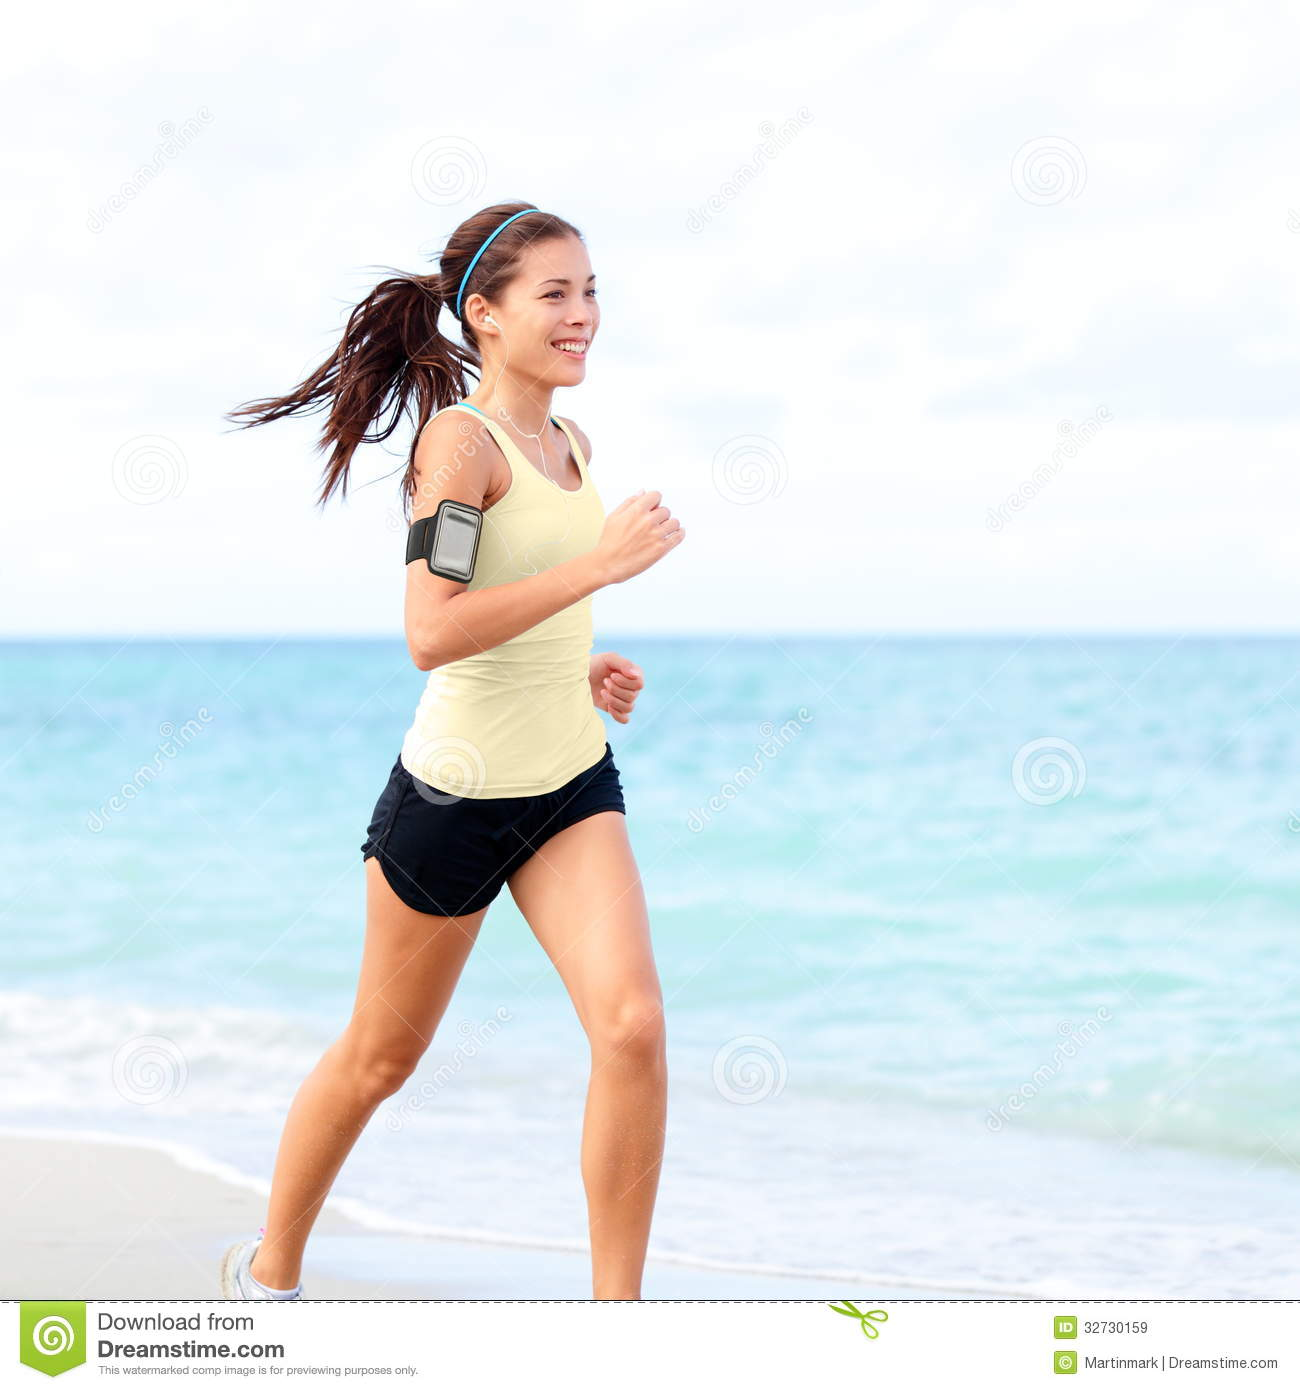 Running woman jogging to music in new york city stock photo.